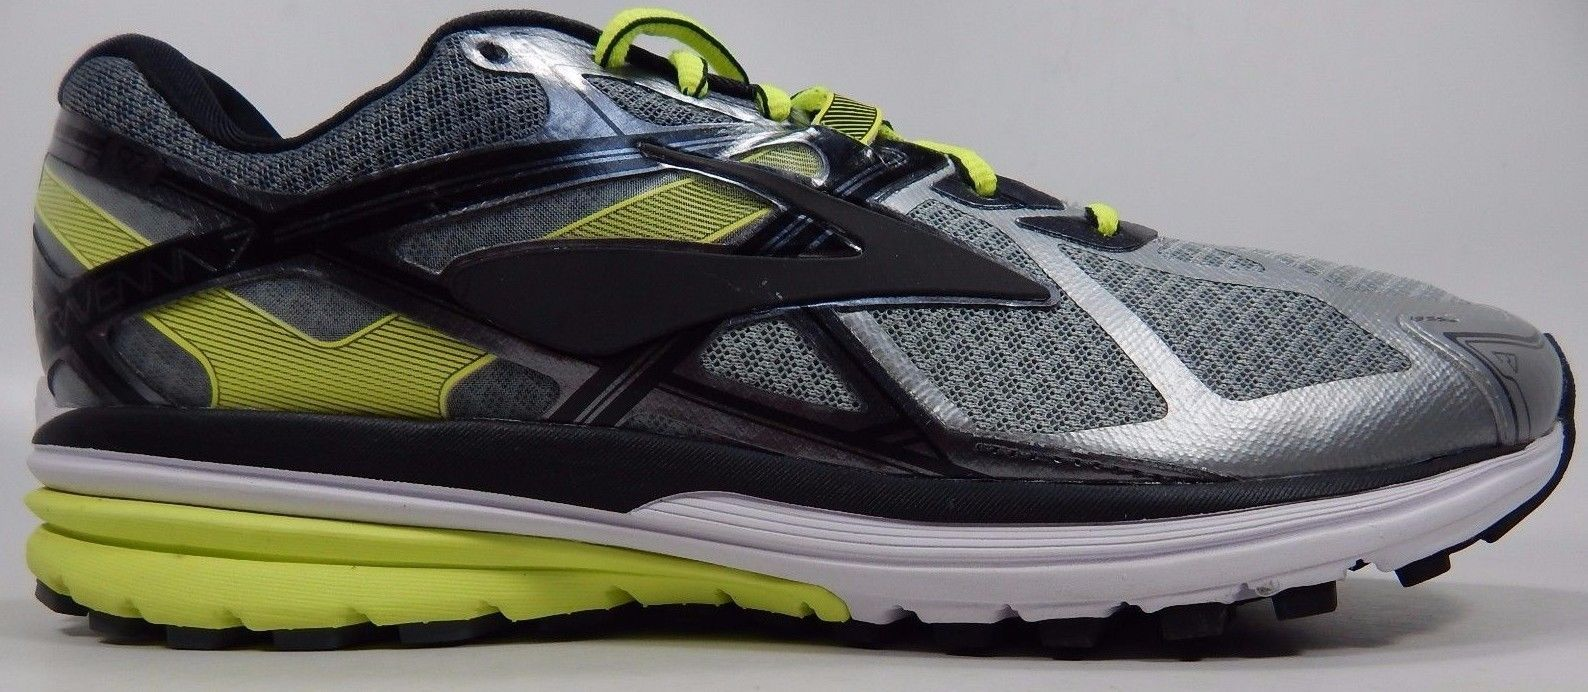 Brooks Ravenna 7 Men's Running Shoes Size US 9 M (D) EU 42.5 Gray 1102171D116